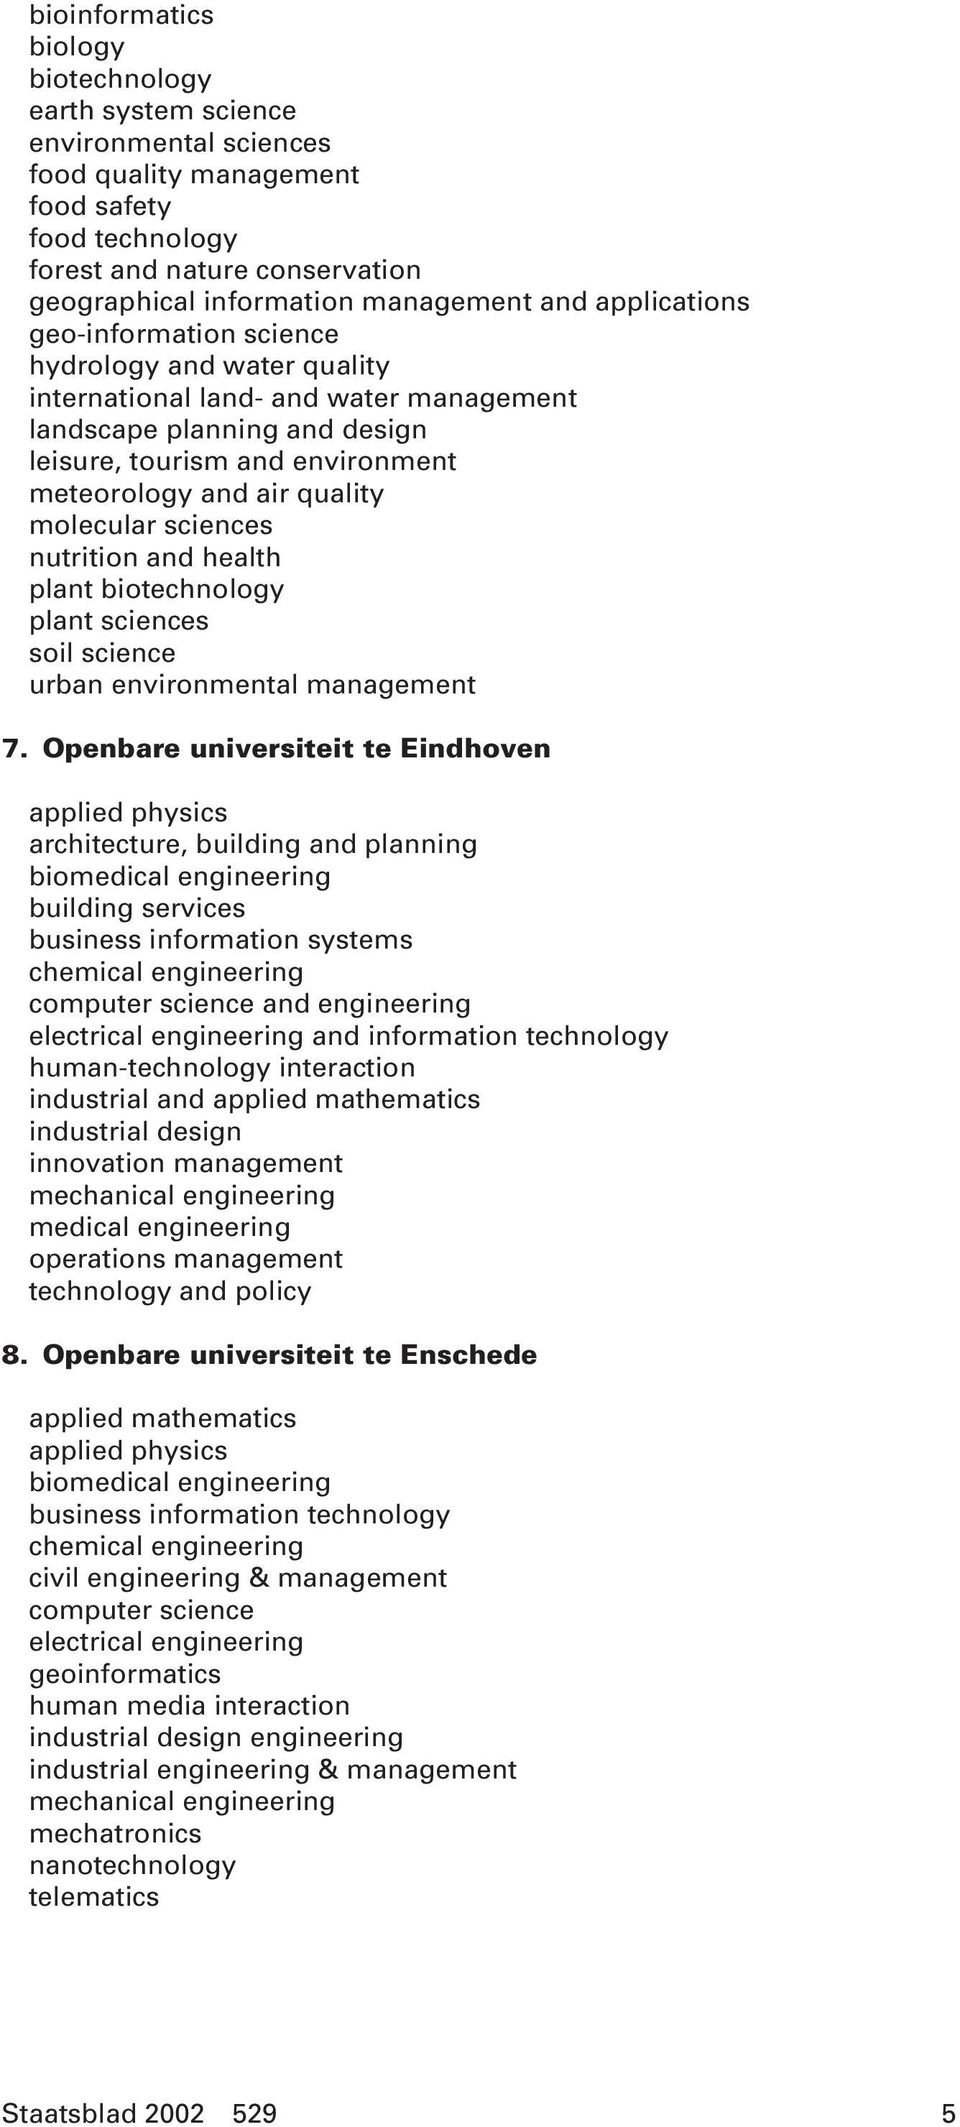 molecular sciences nutrition and health plant biotechnology plant sciences soil science urban environmental management 7.